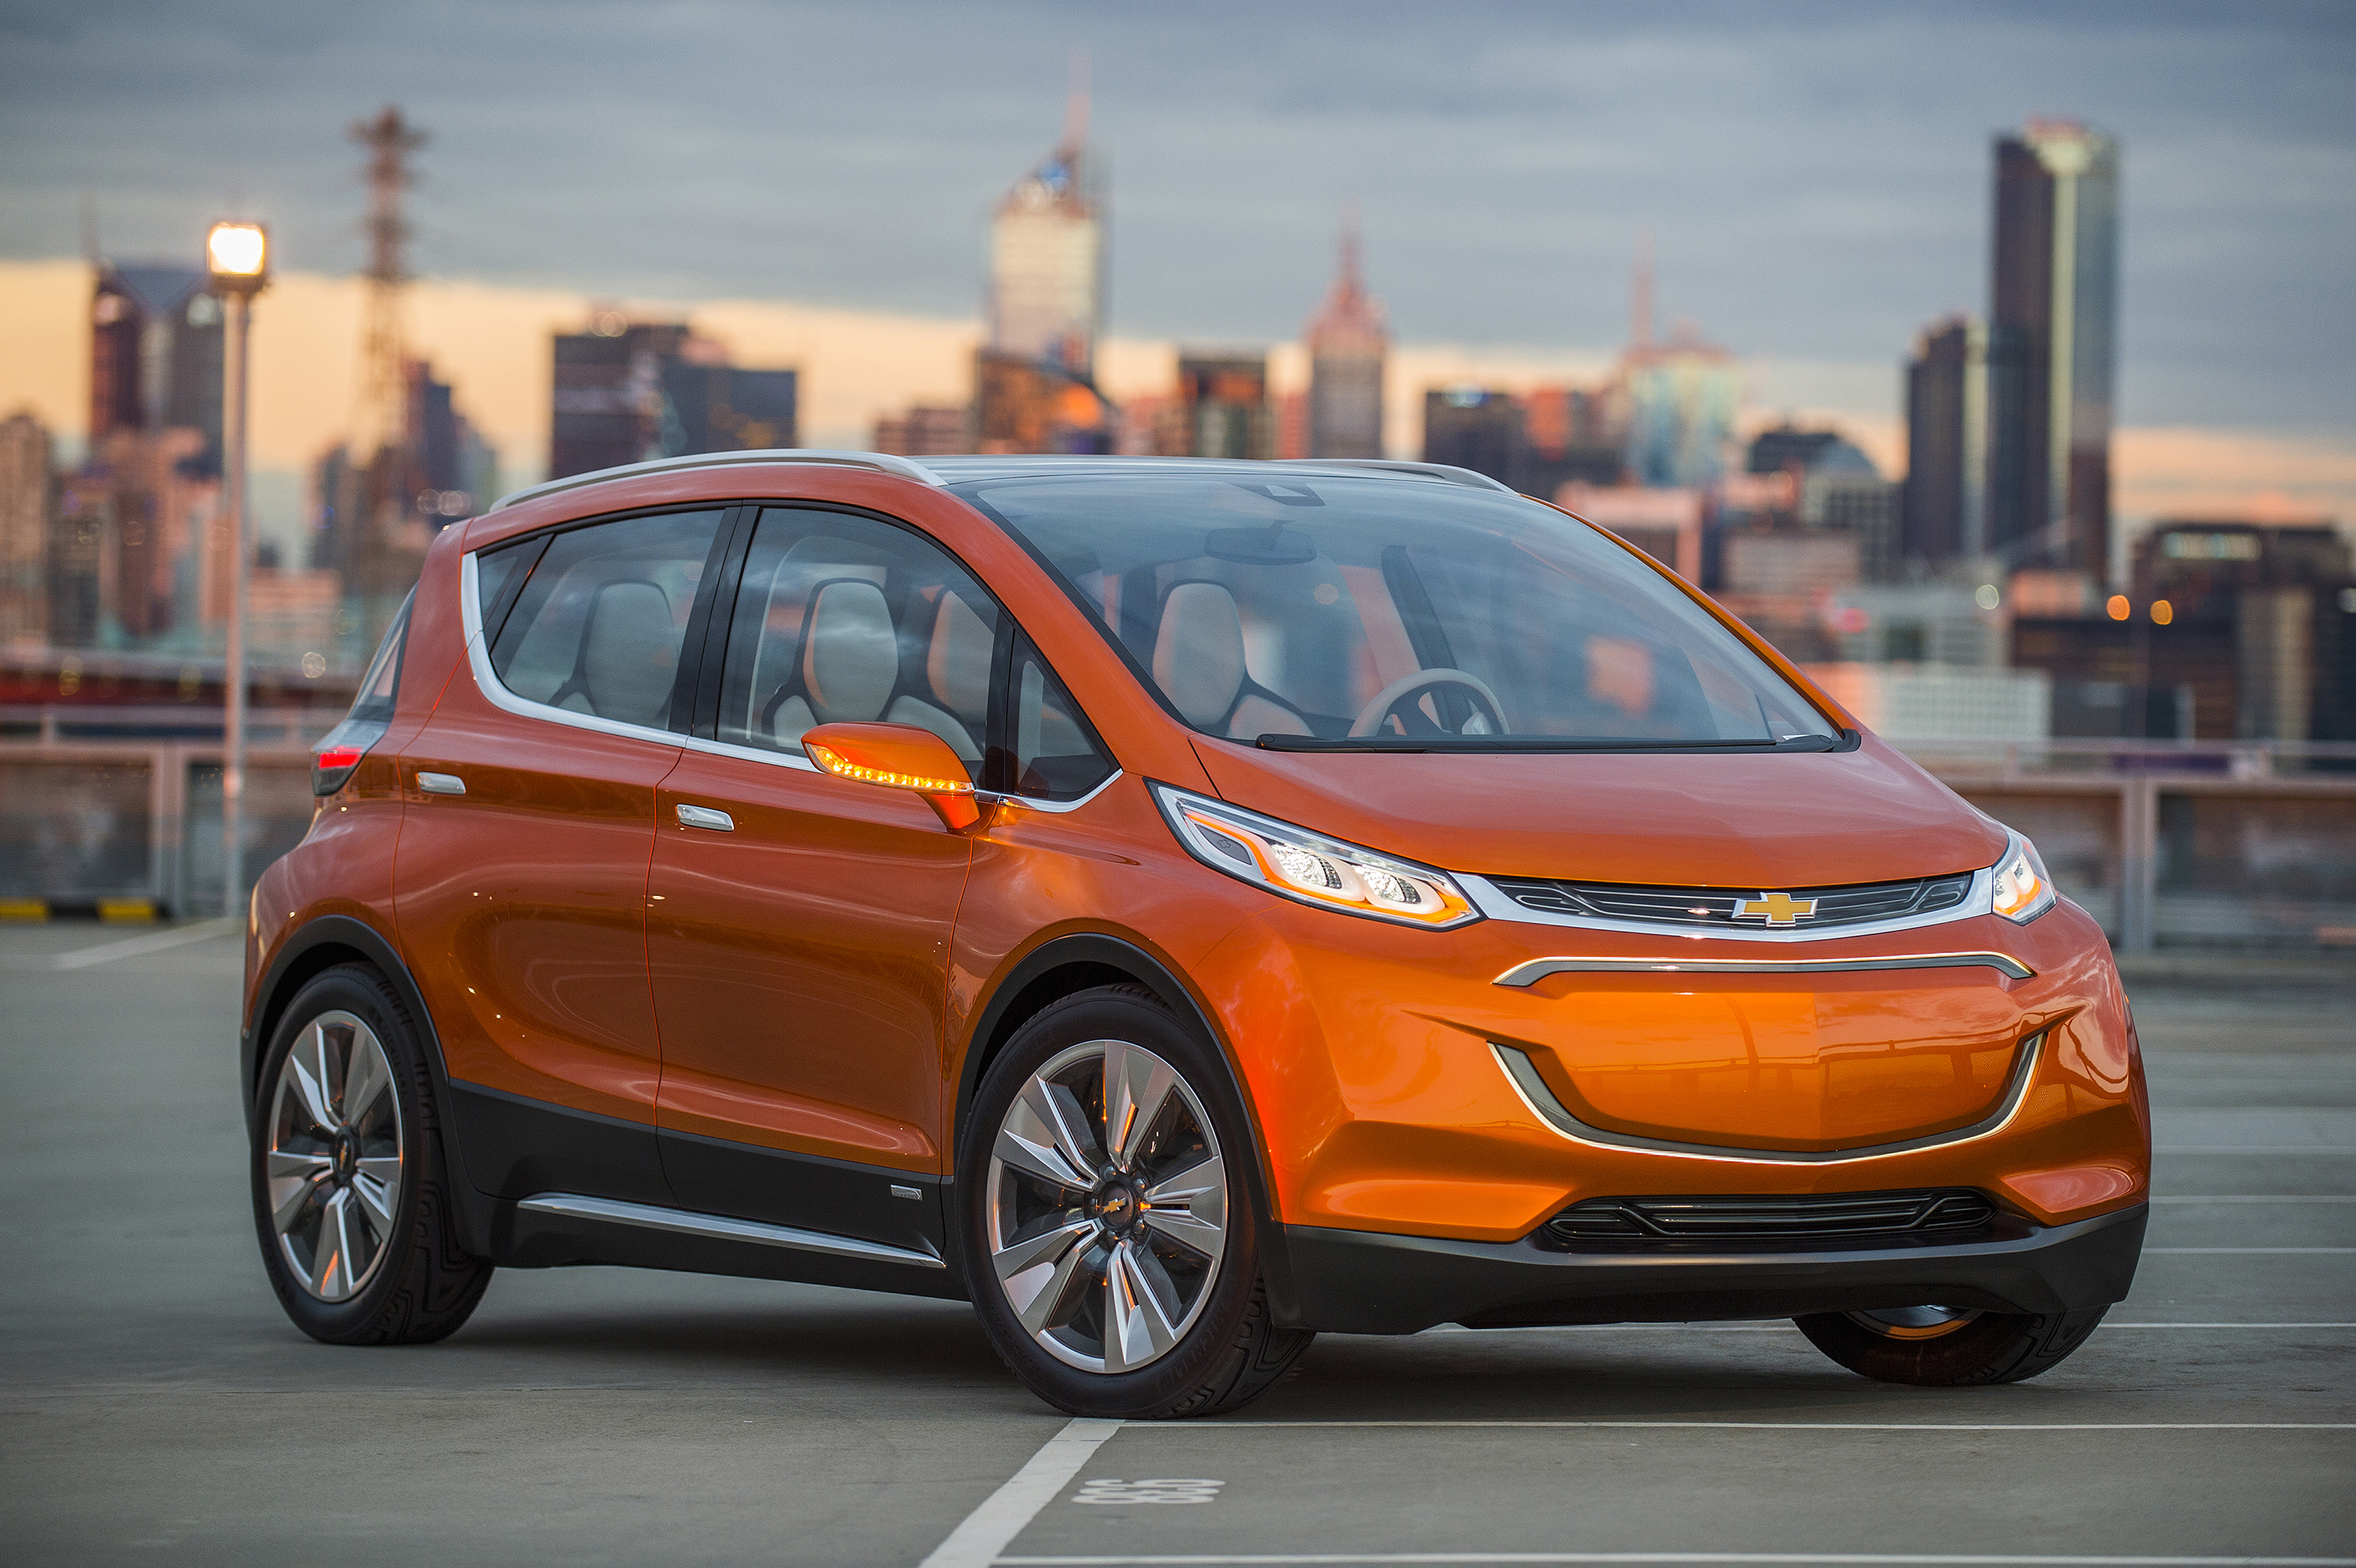 2017 Chevy Bolt What We Know So Far